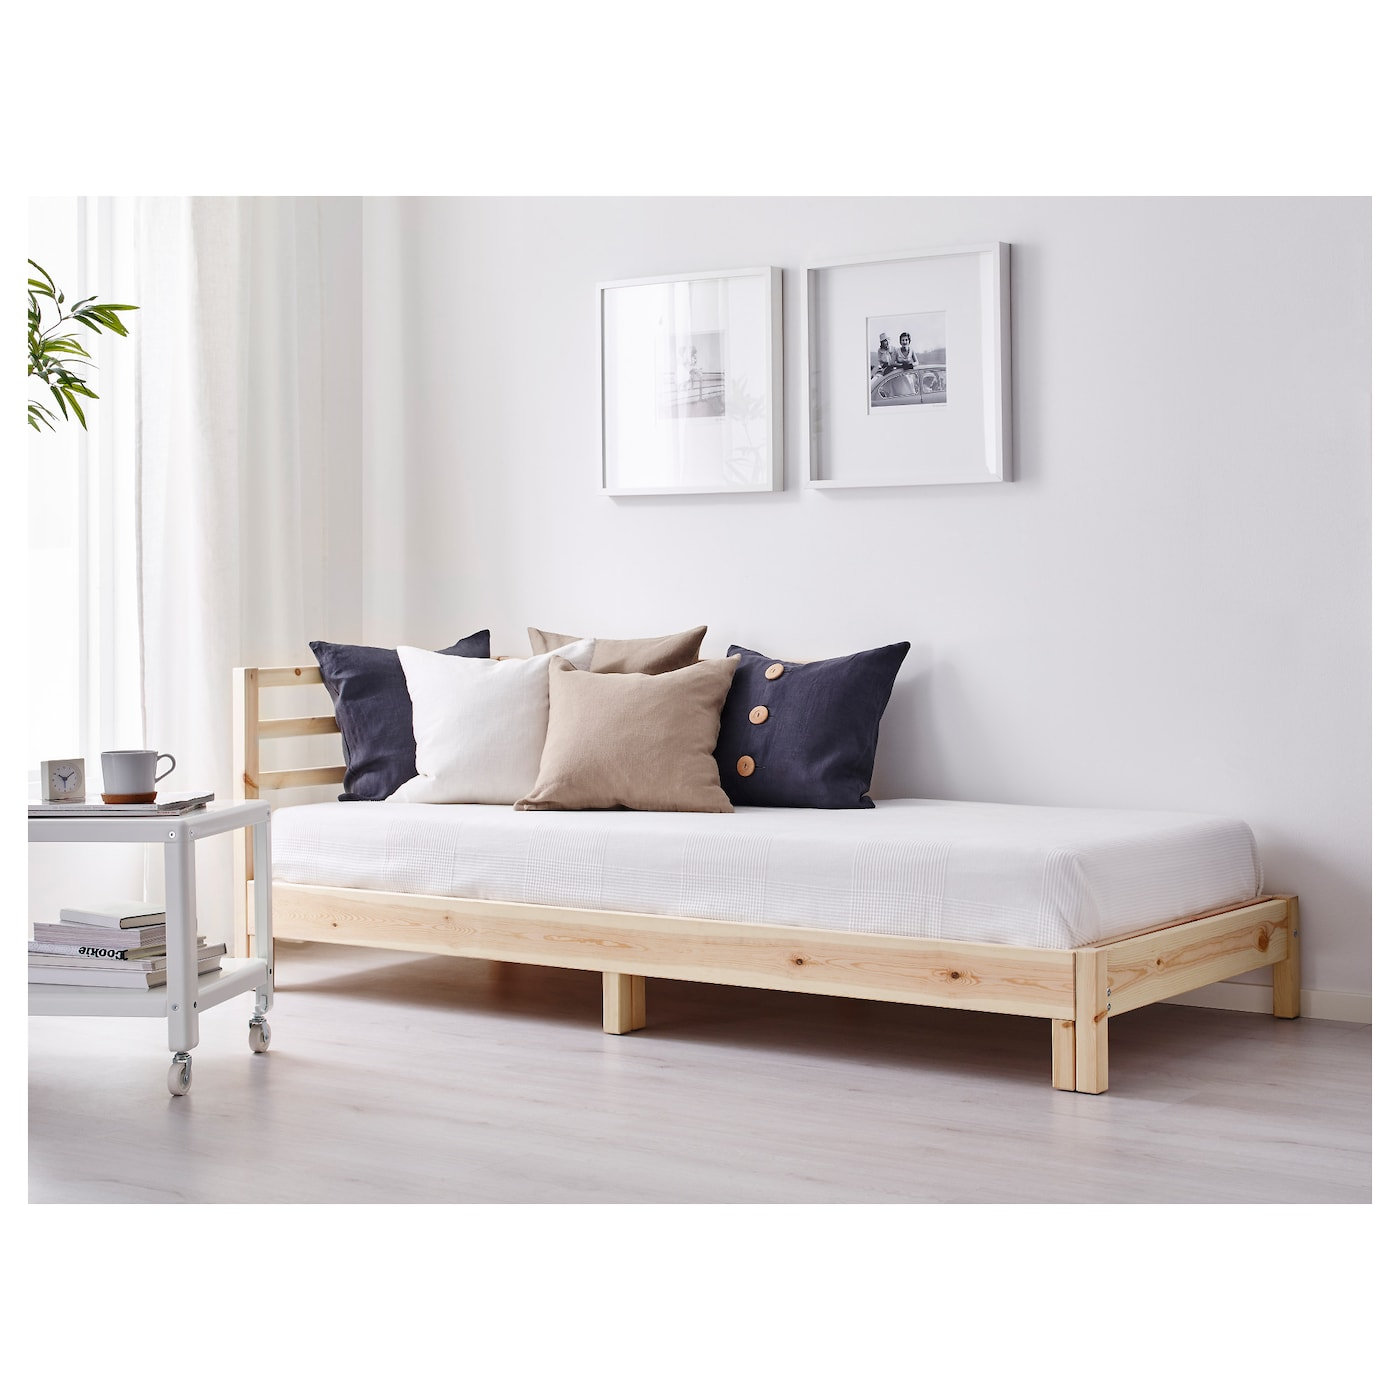 Tarva day bed frame pine 80 x 200 cm ikea for Ikea day bed